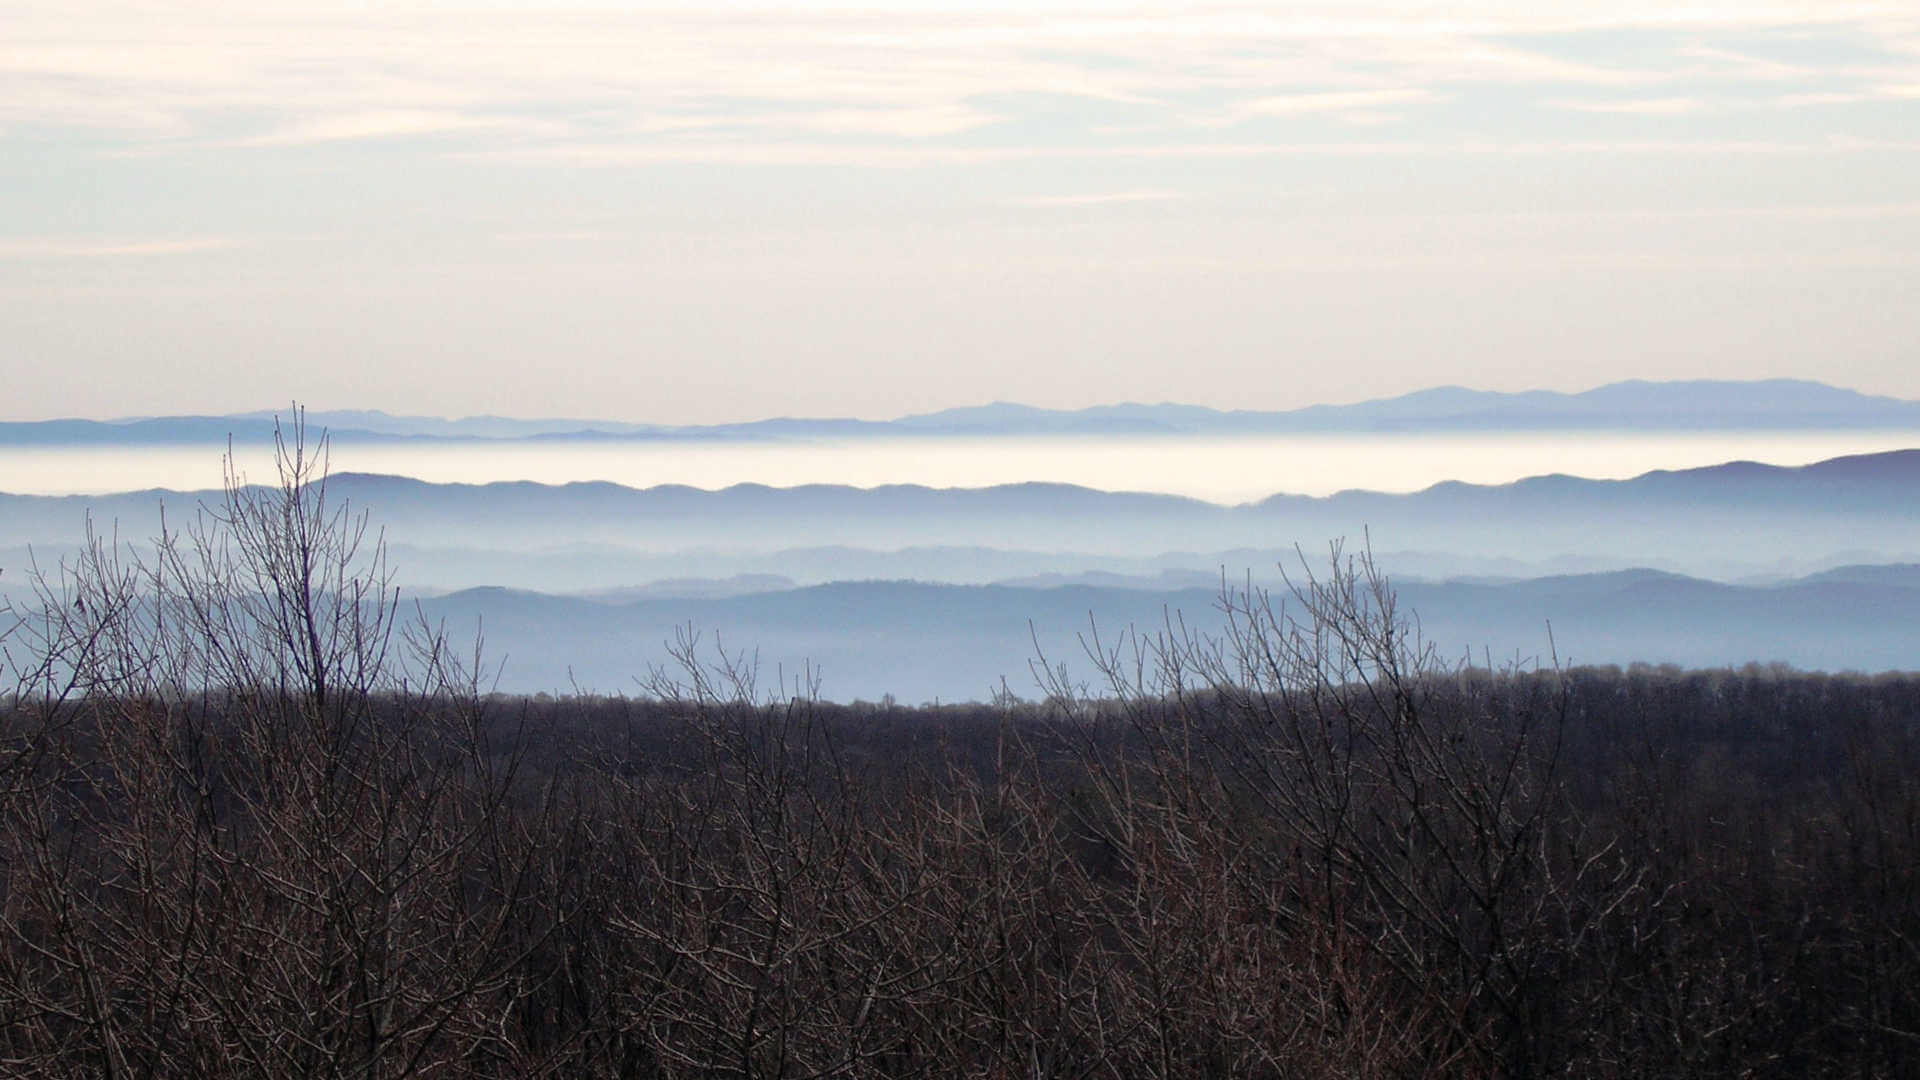 Country life vs city life: Looking out across the hills of Appalachia. Country life gives you space to enjoy in nature!